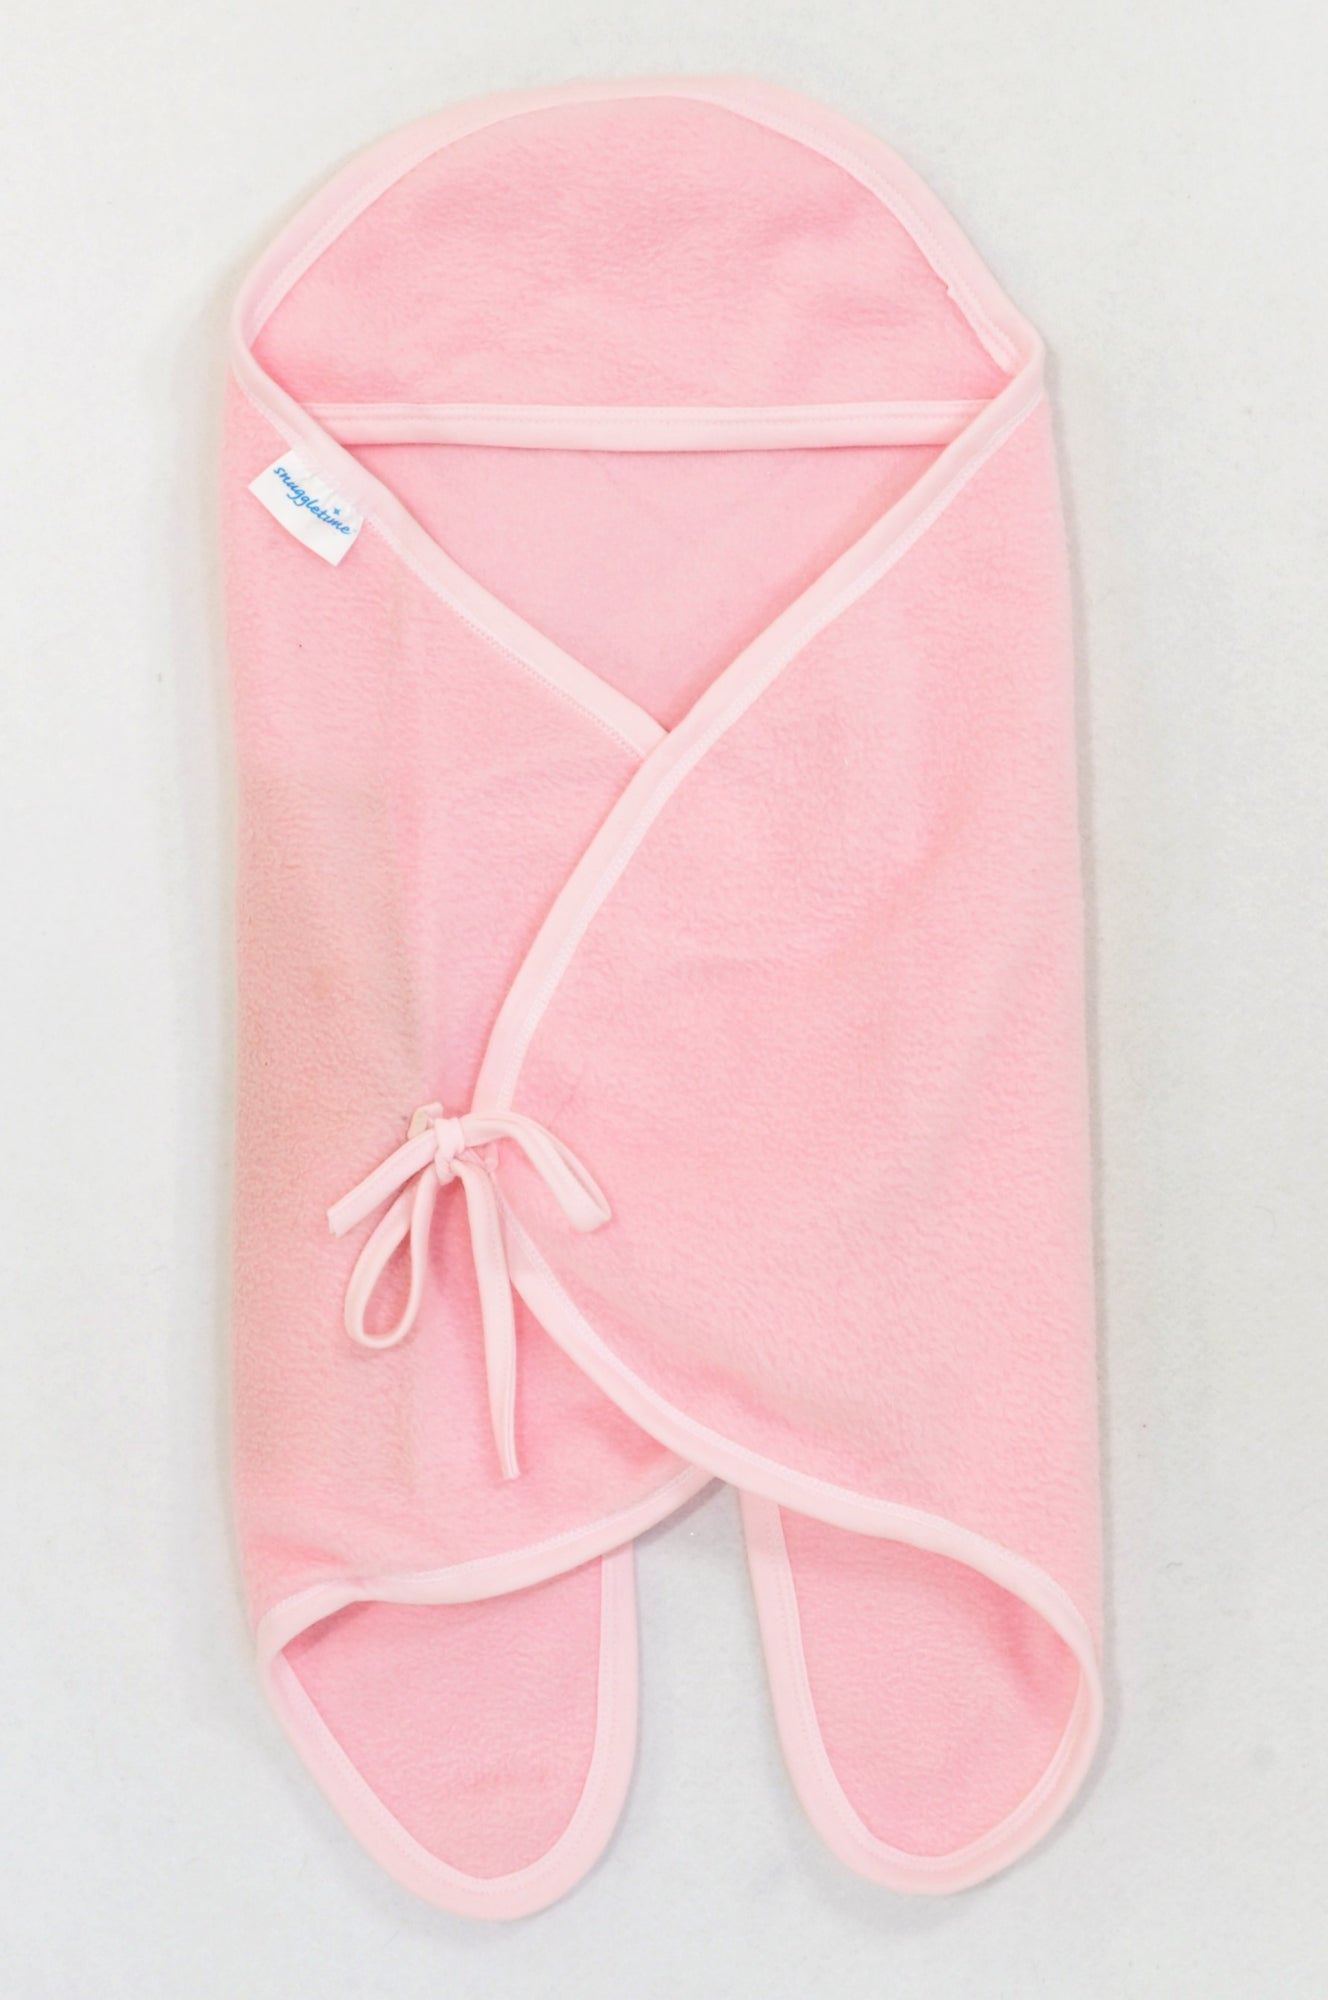 Snuggletime Pink Fleece Swaddle Wrap Girls N-B to 6 months